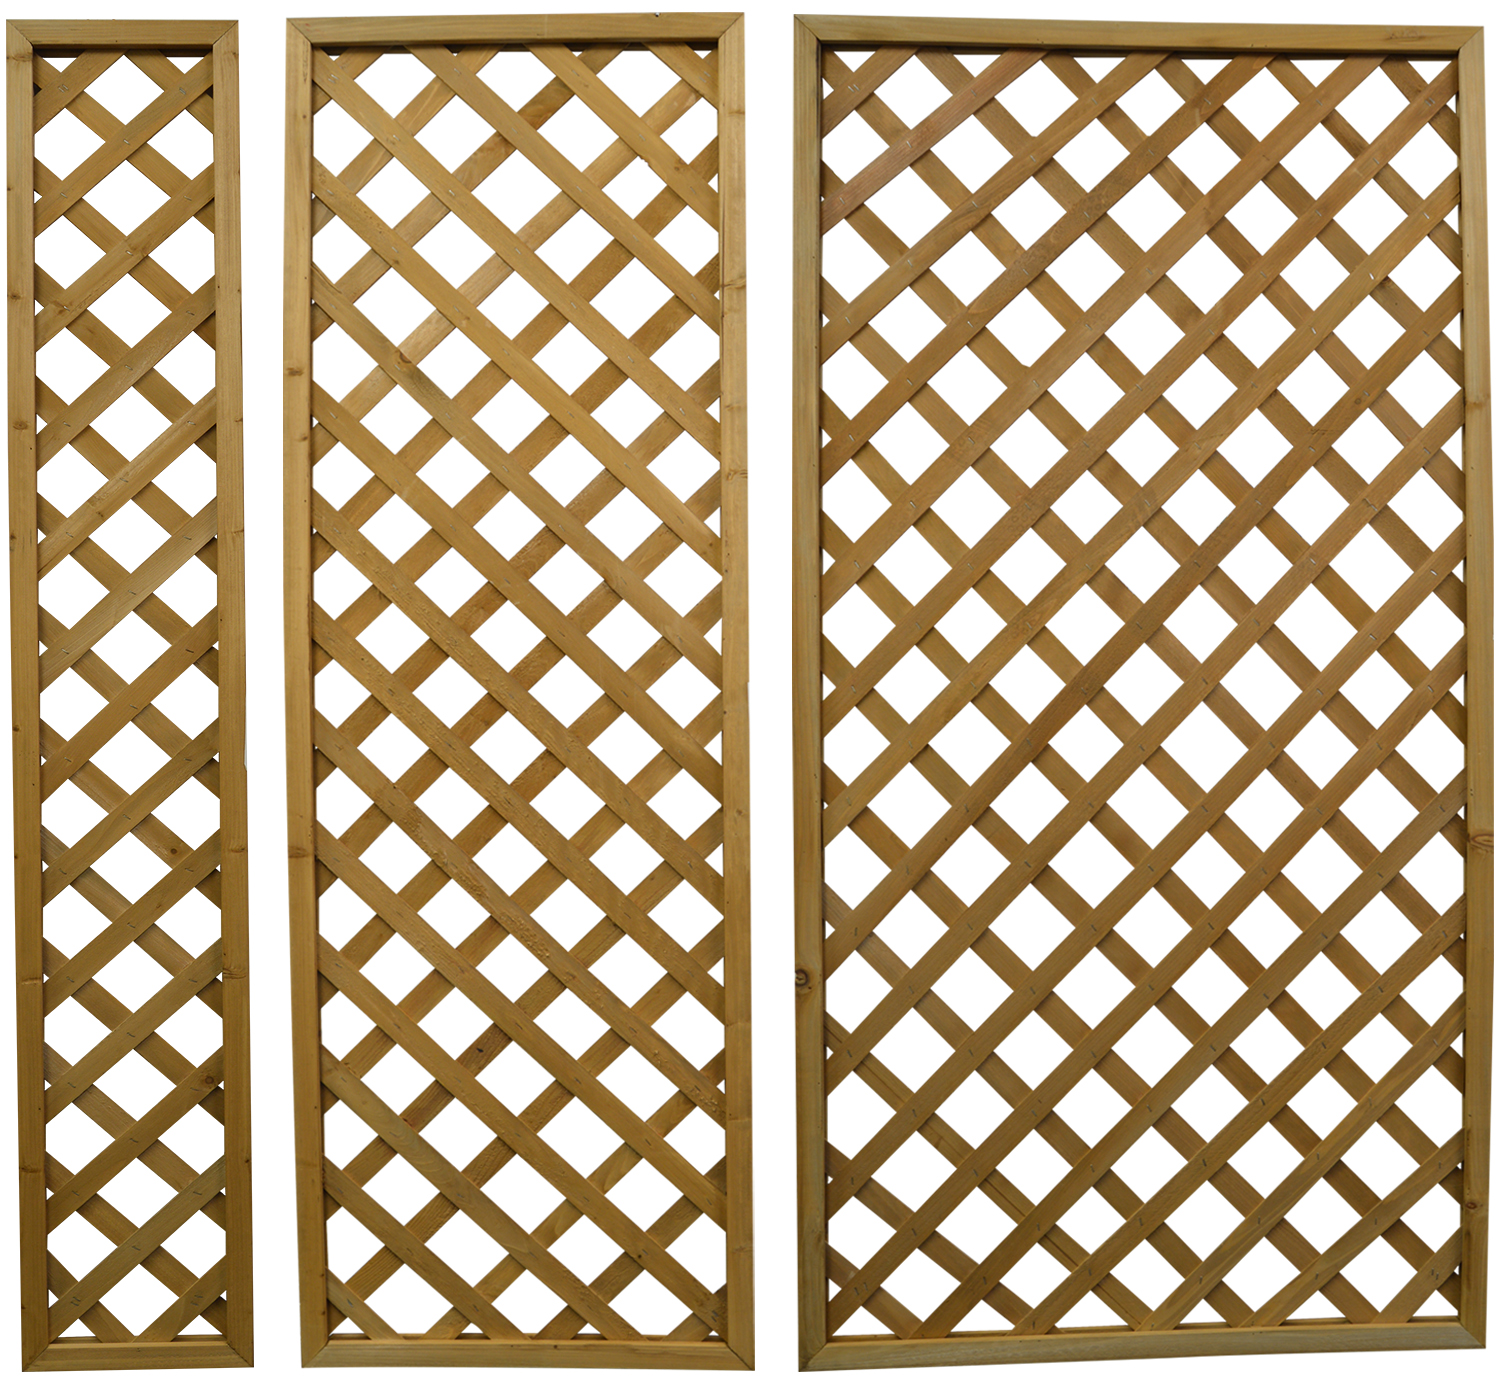 Woodside Wooden Outdoor 180cm Lattice Pattern Garden